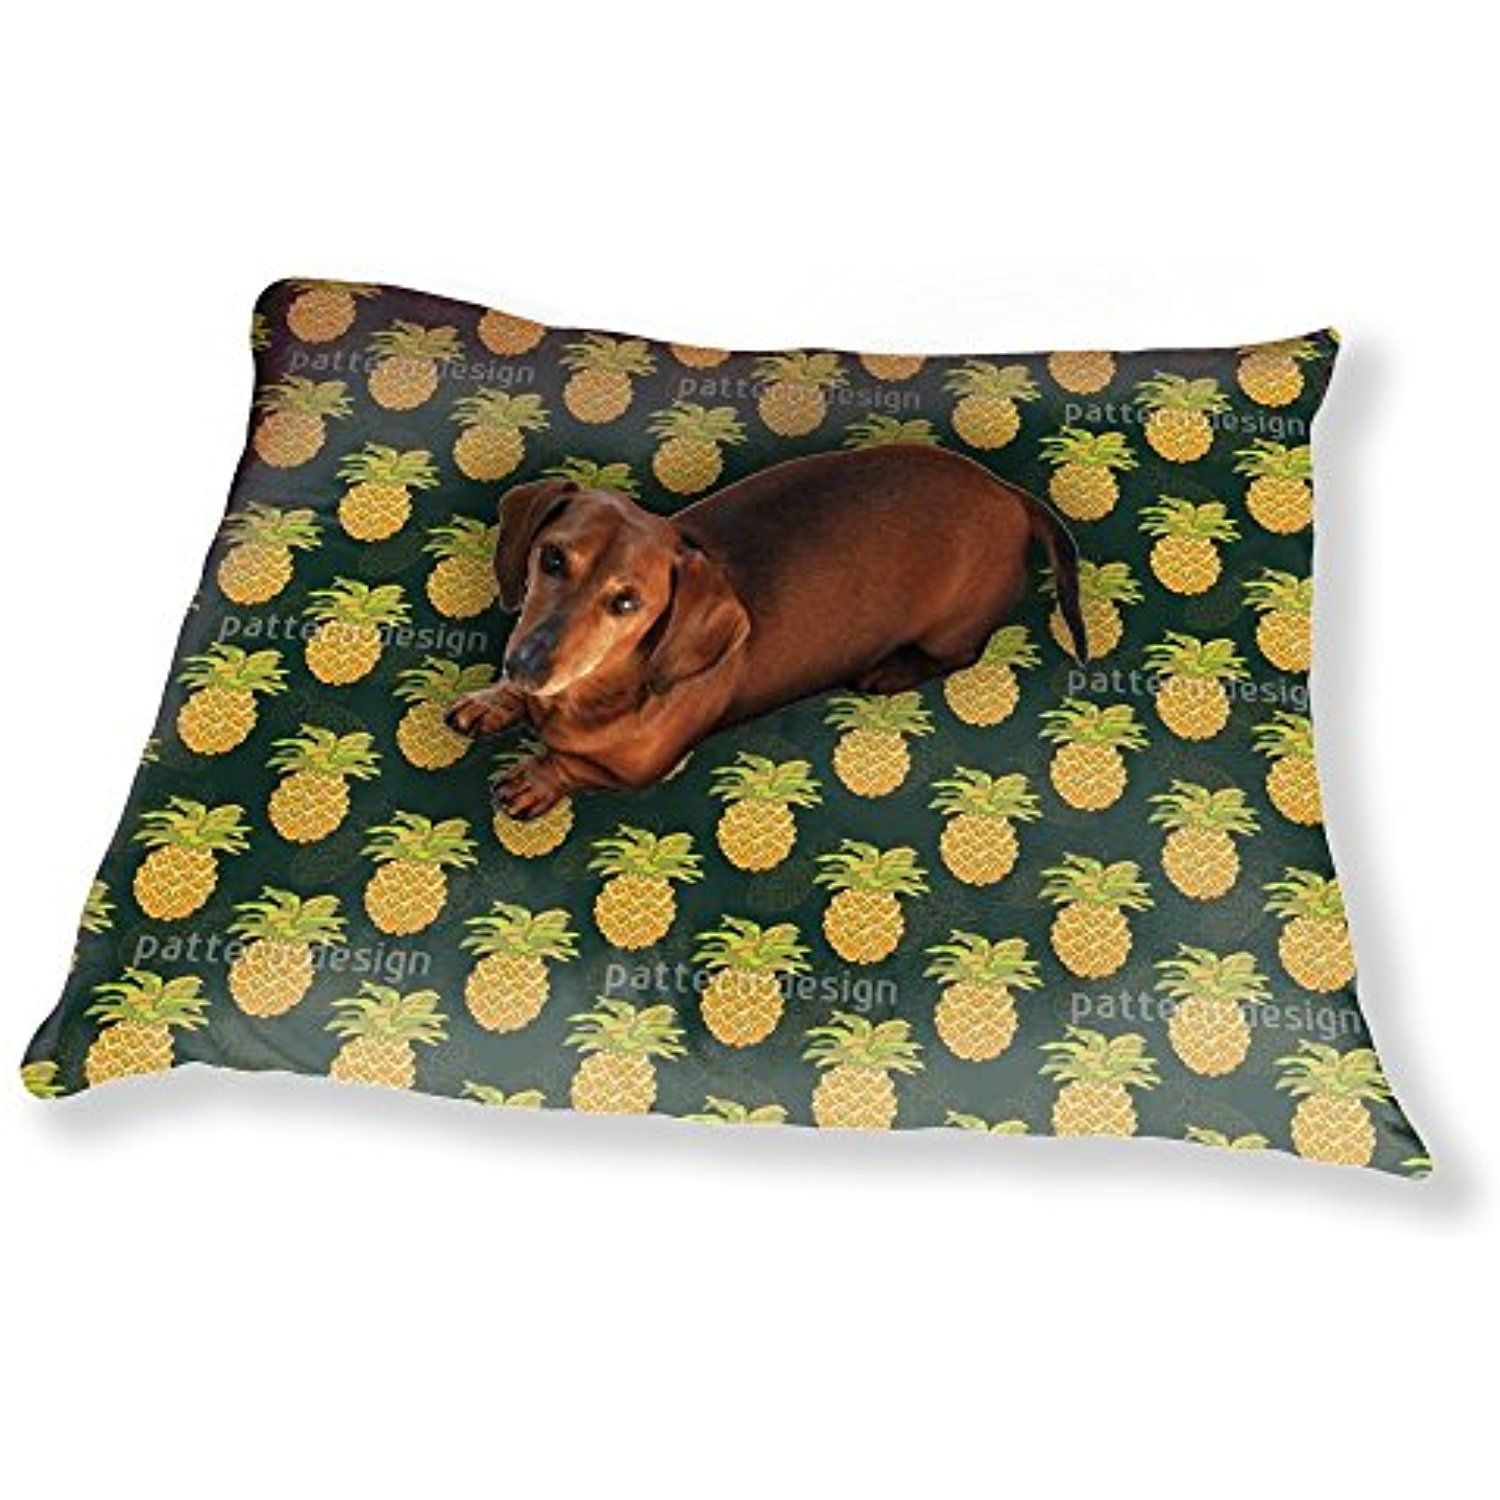 Ripe Pineapples Dog Pillow Luxury Dog / Cat Pet Bed You